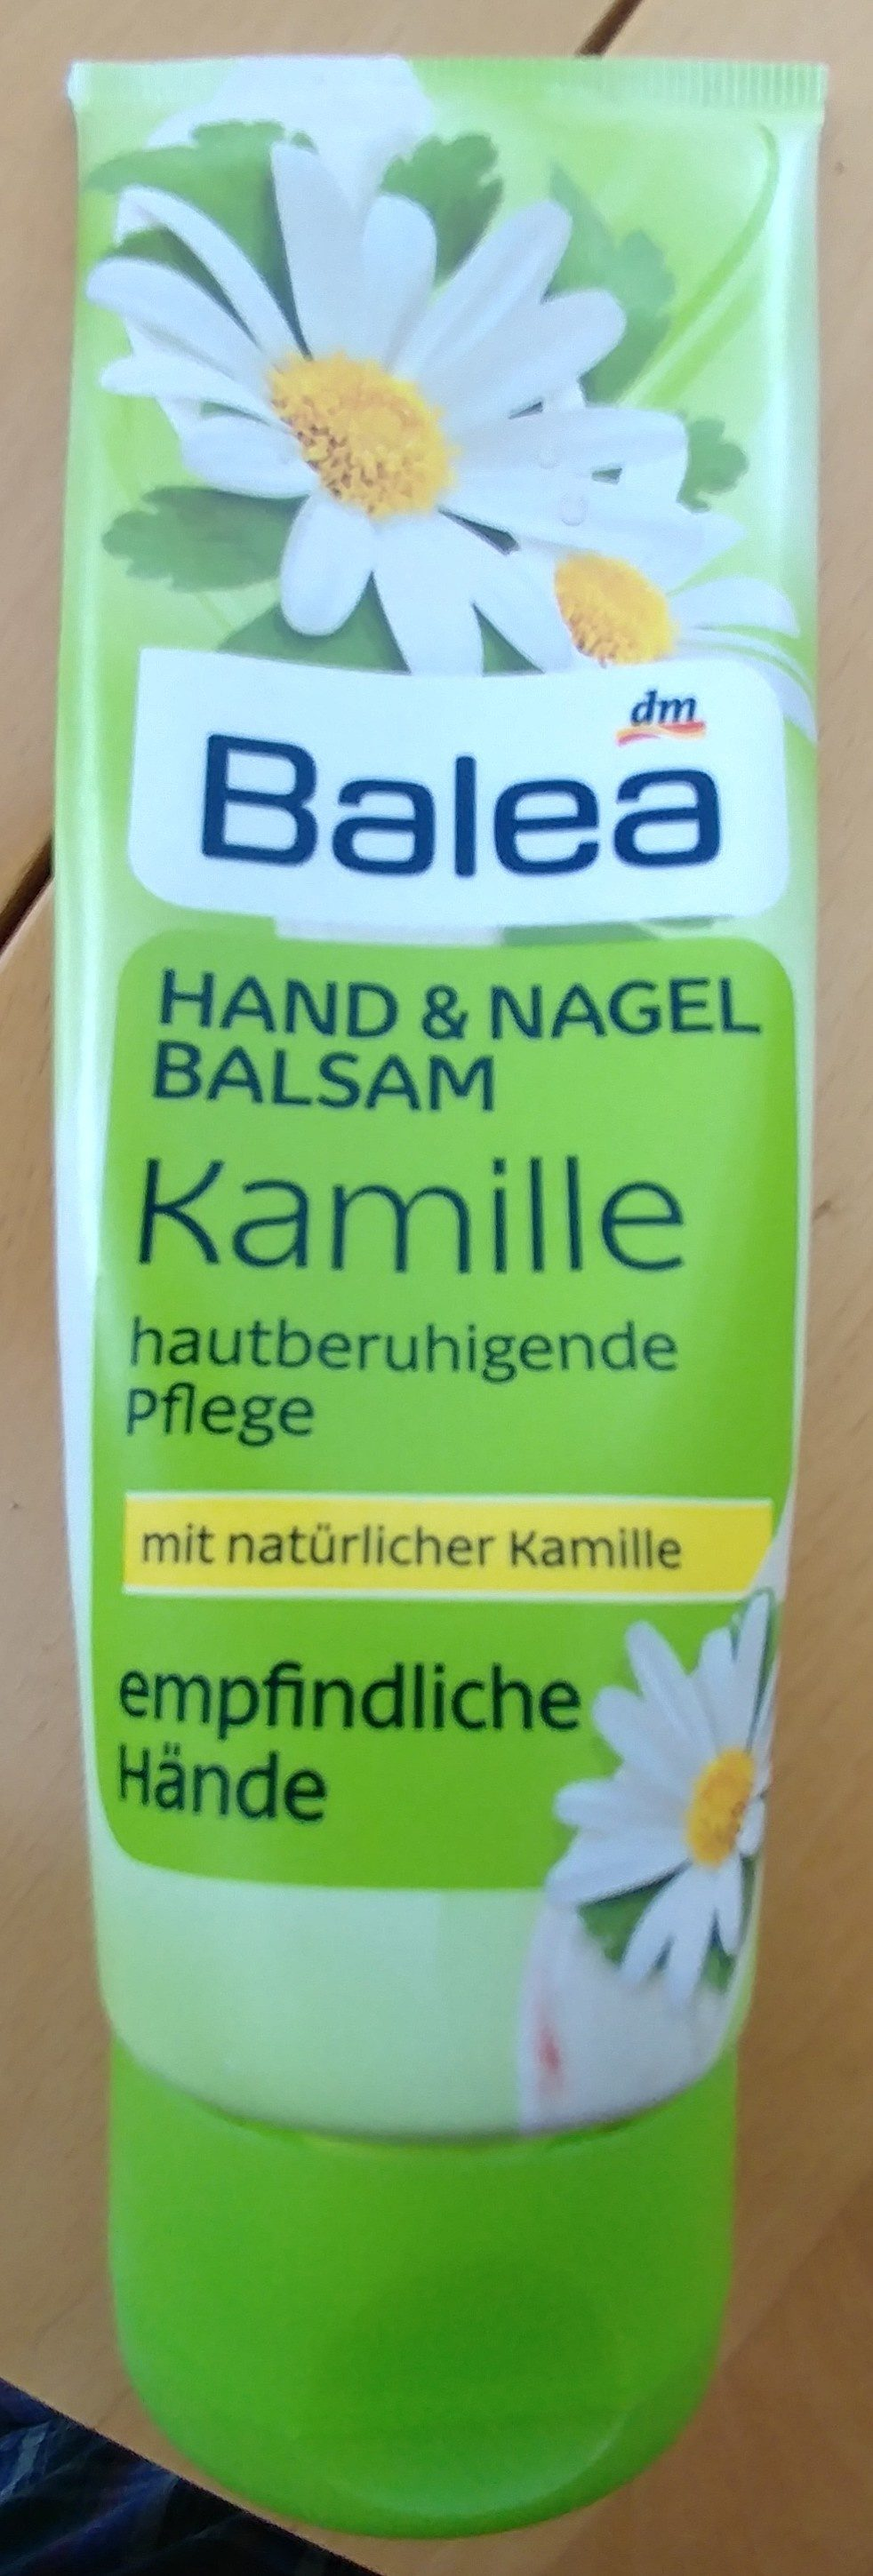 Hand & Nagel Balsam Kamille - Product